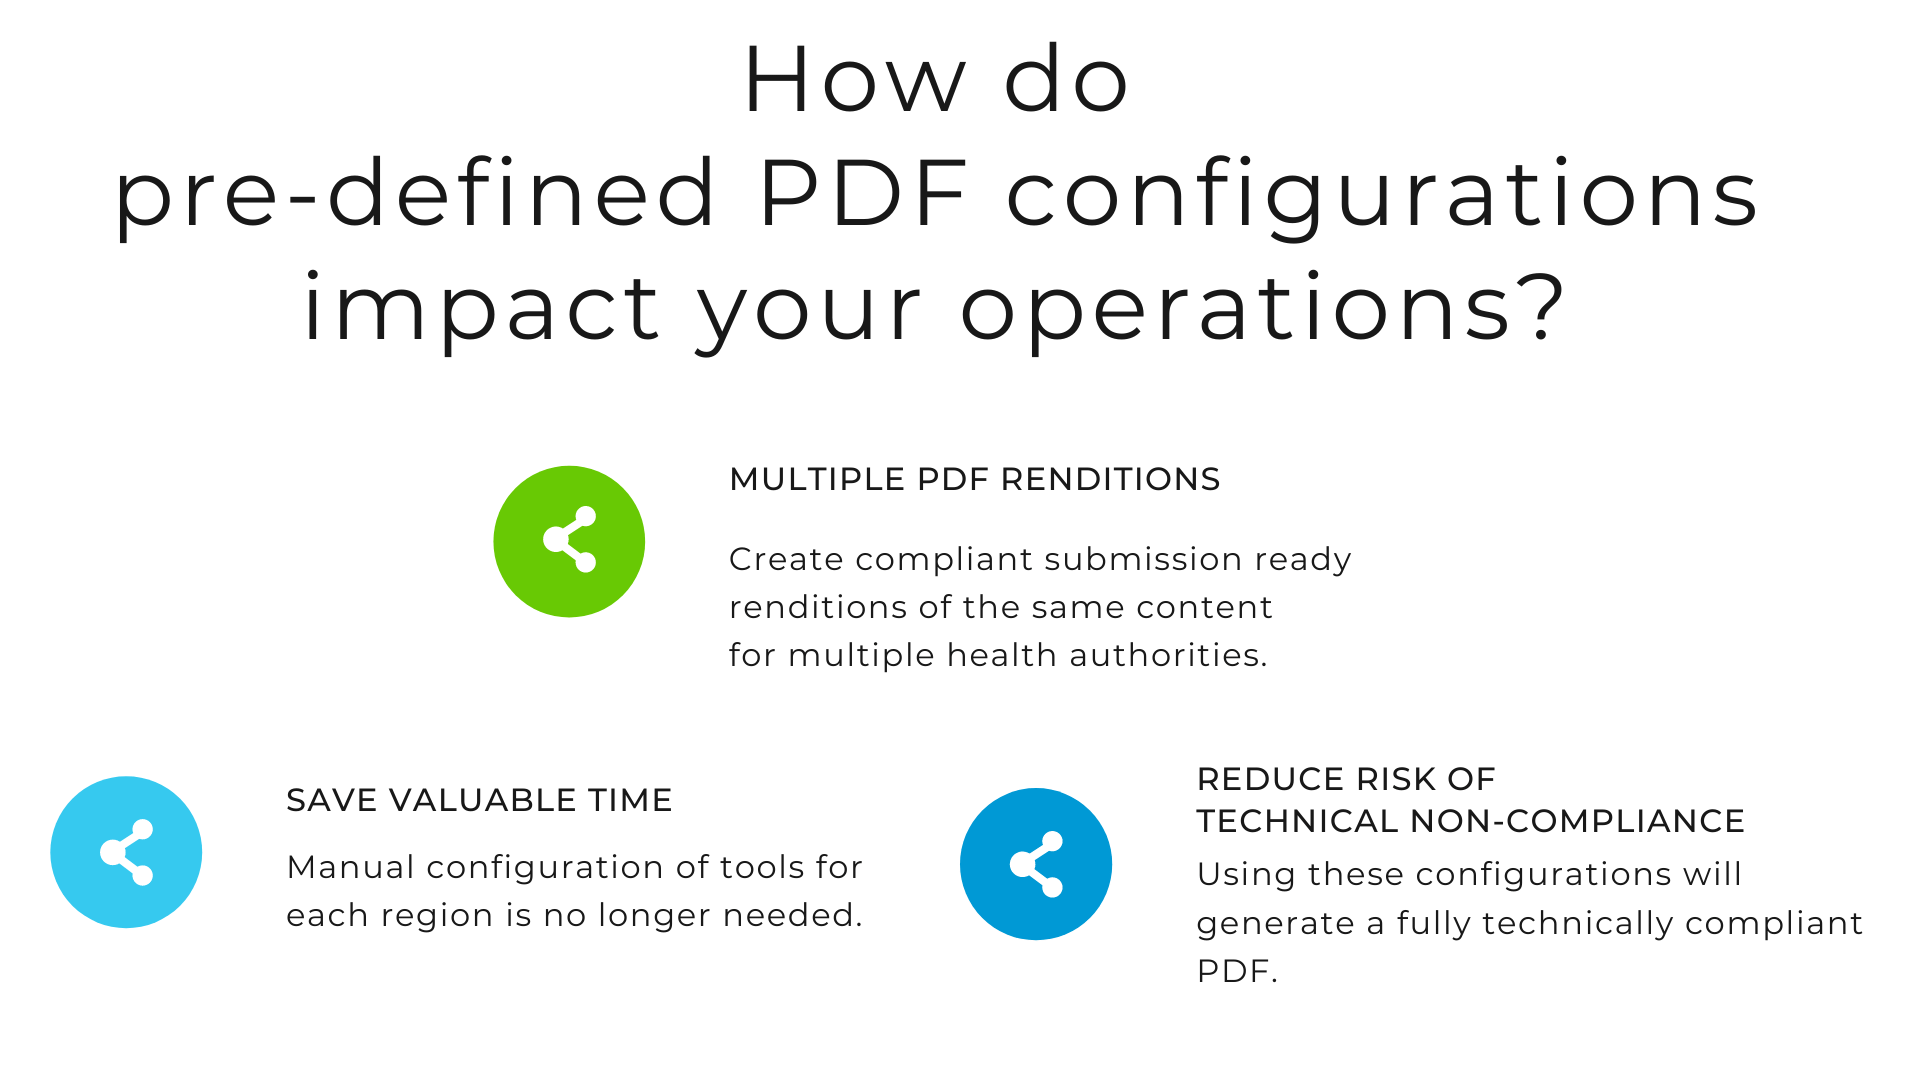 Compliant, pre-defined PDF configurations to create fully technically PDFs for FDA, EMA, PMDA, HC and many more. Save time, reduce risk of non-compliance with DocShifter